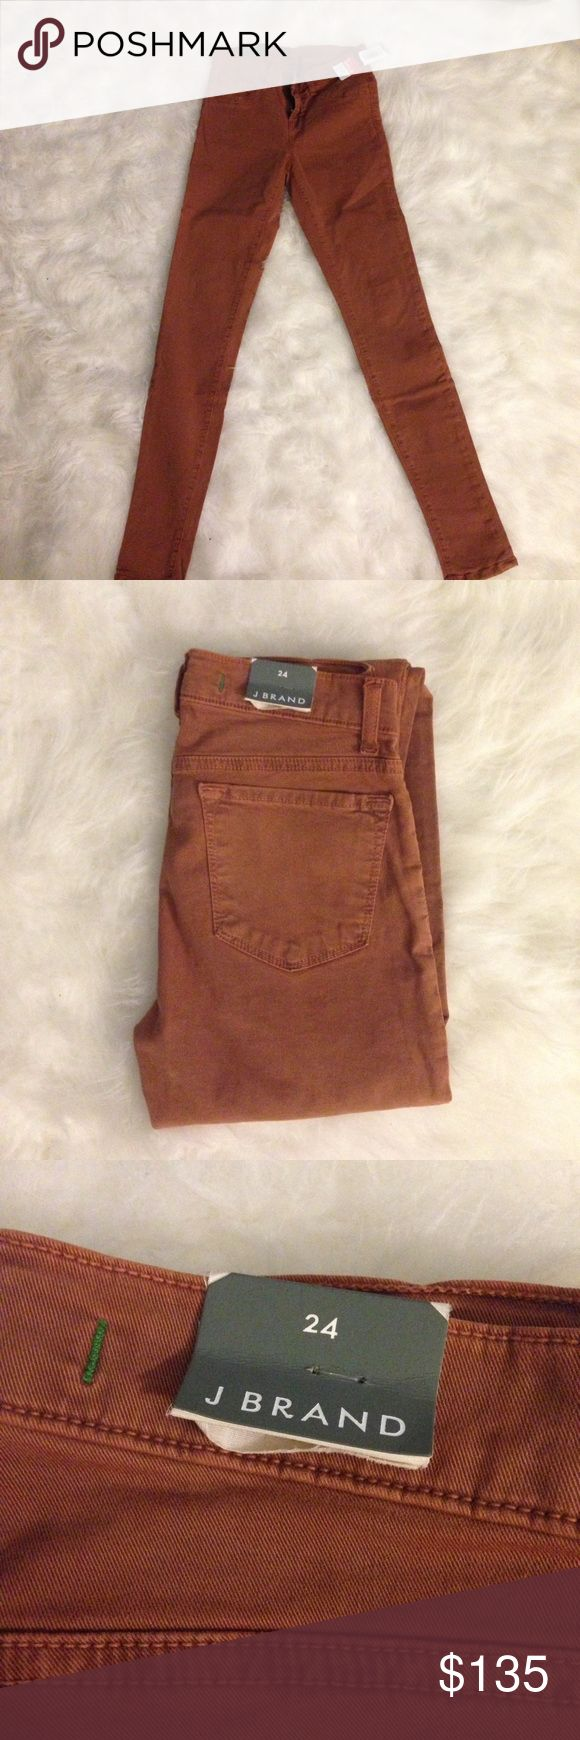 NWT J Brand Tan Brown Skinny Jeans Aritzia 24 New with tags. Brown/tan super skinny jeans. Size 24. Purchased from Aritzia. J Brand Jeans Skinny